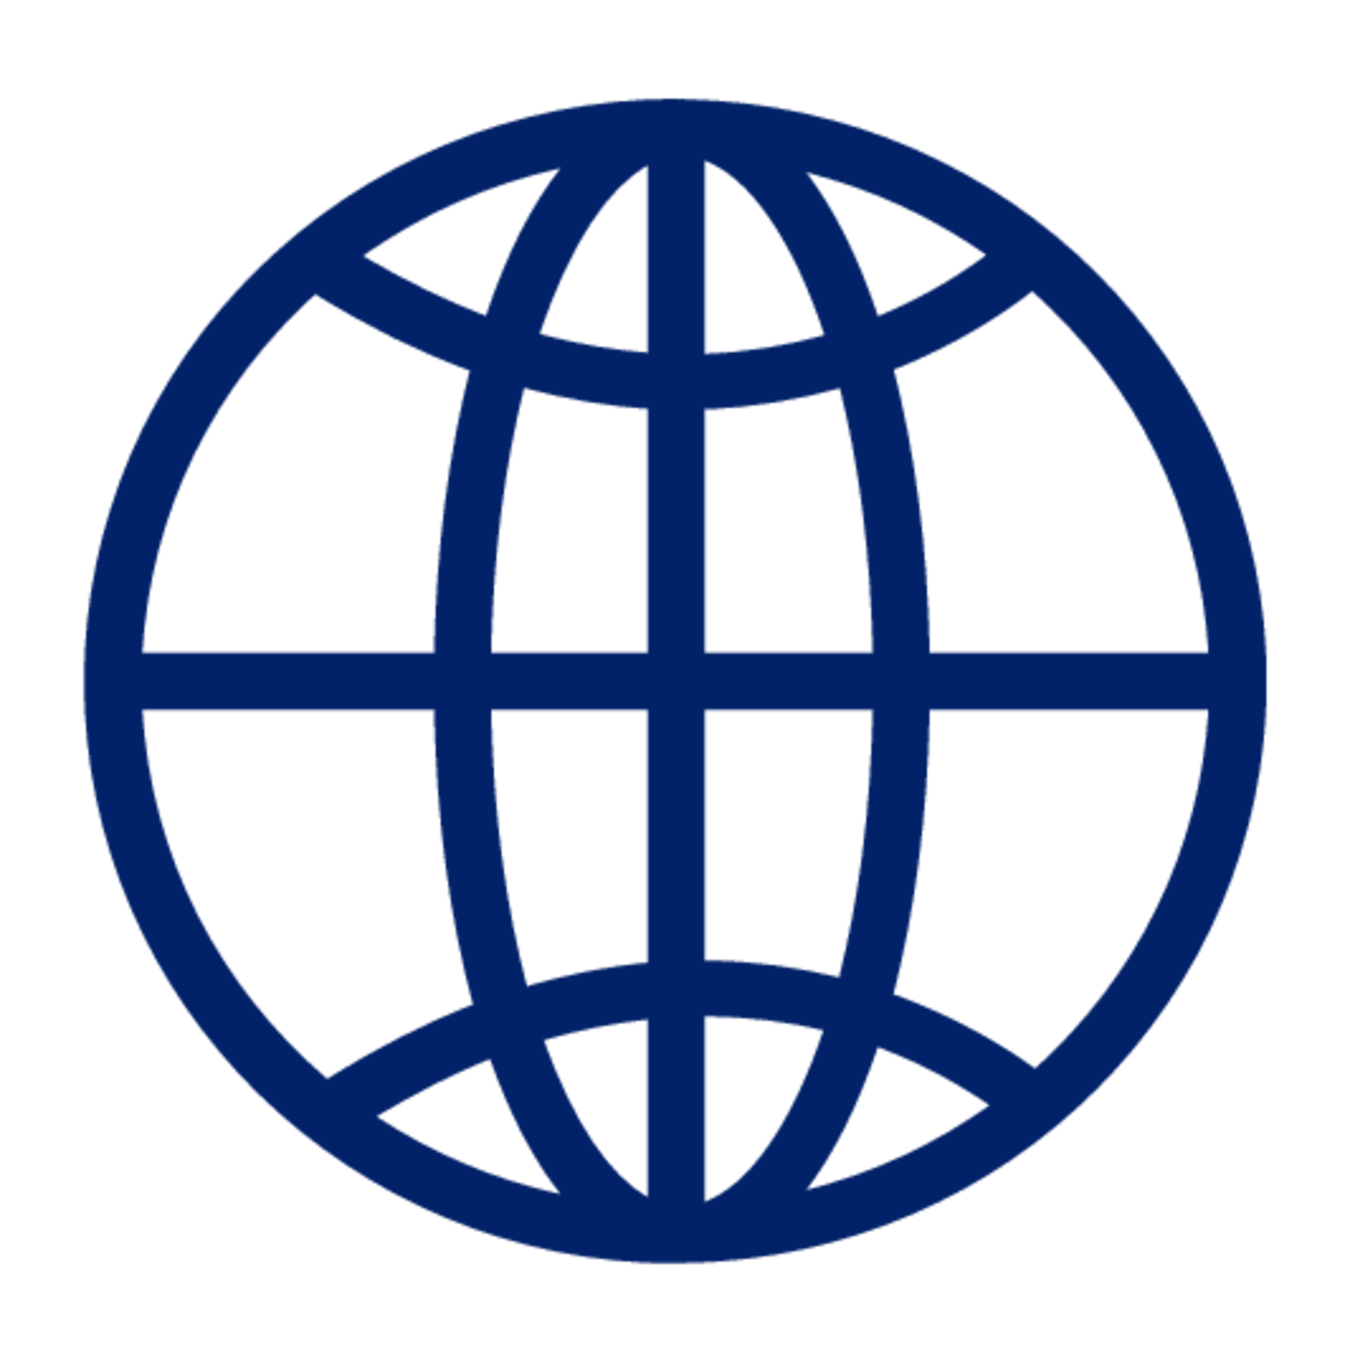 A blue icon of a globe.